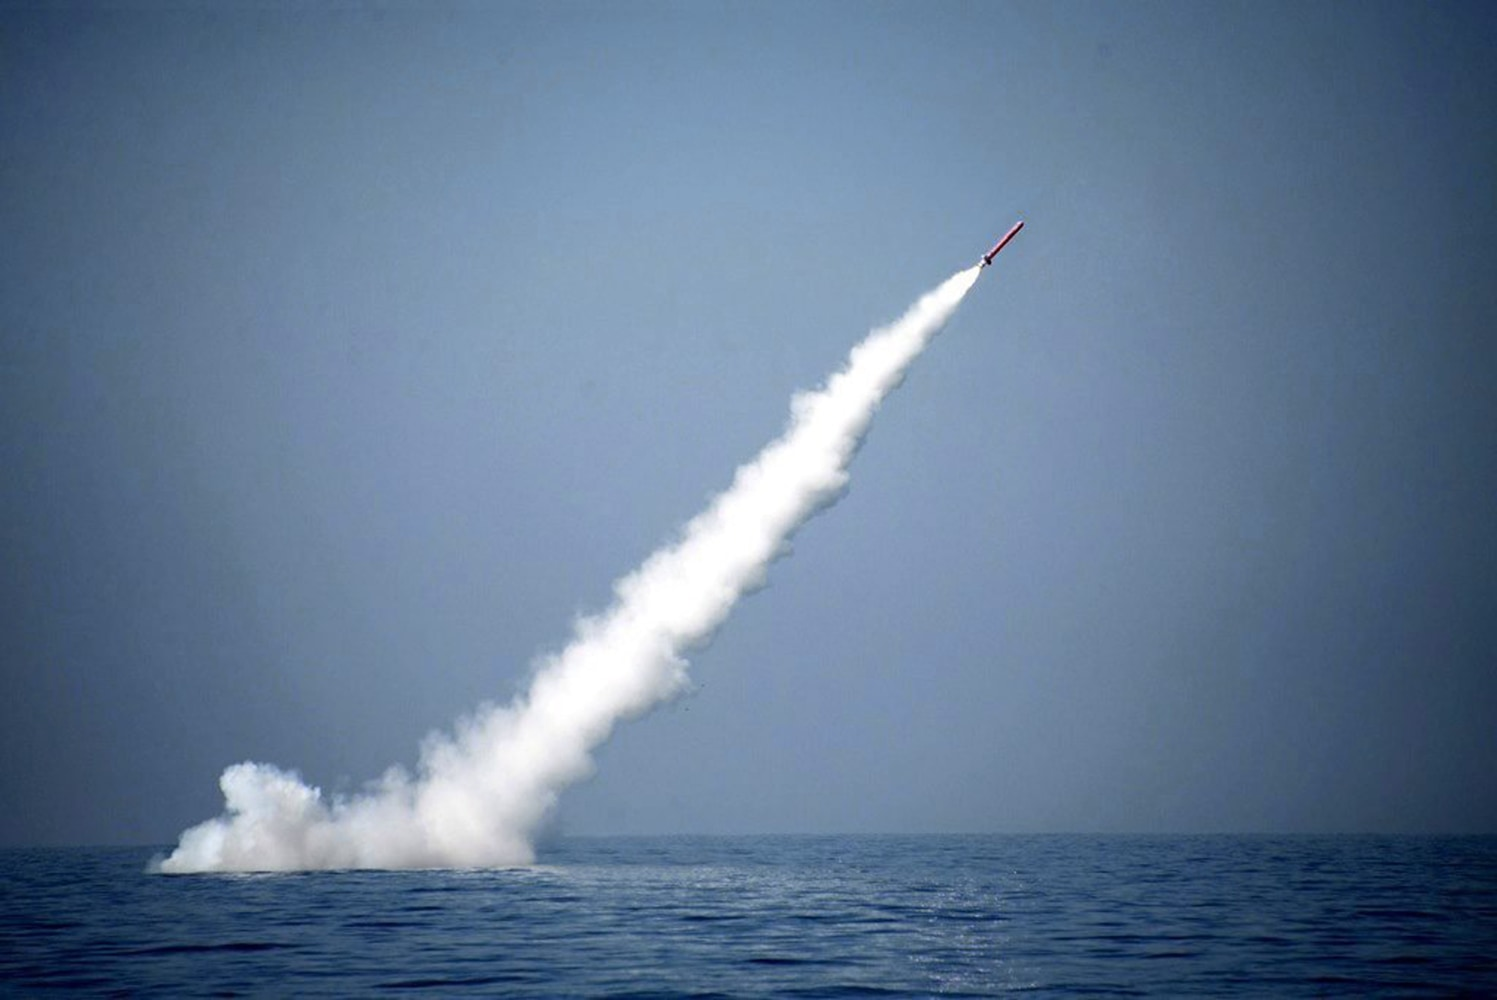 Pakistan test-fires first nuclear-capable submarine cruise missile Babur-3